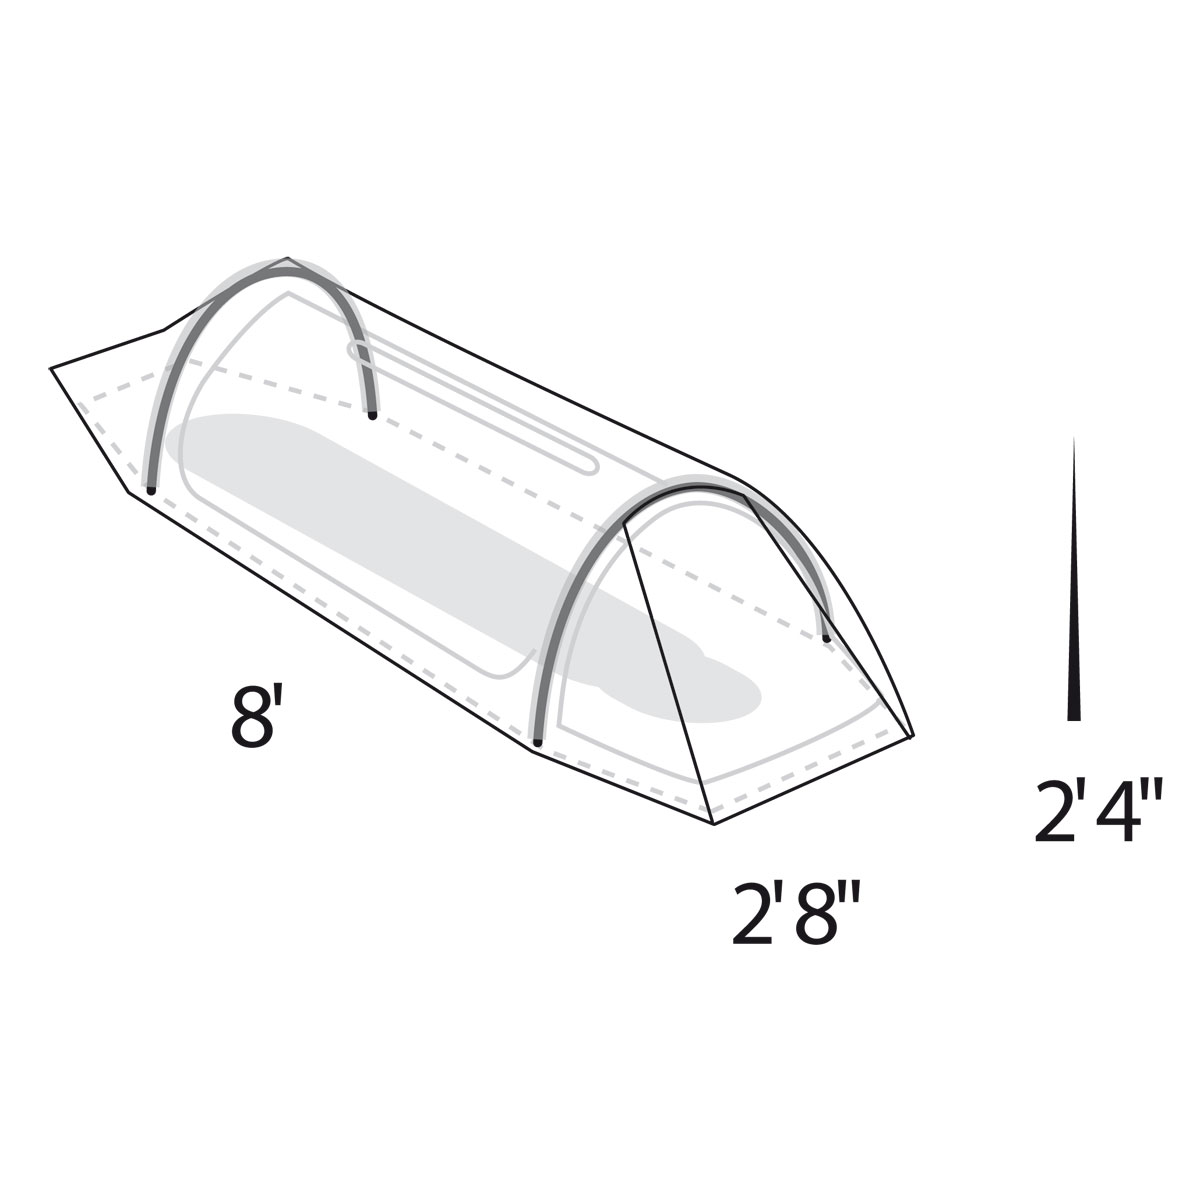 Solitaire 1 Person Tent. 1  sc 1 st  Tents | Eureka! - Johnson Outdoors & Solitaire 1 Person Tent | Eureka!